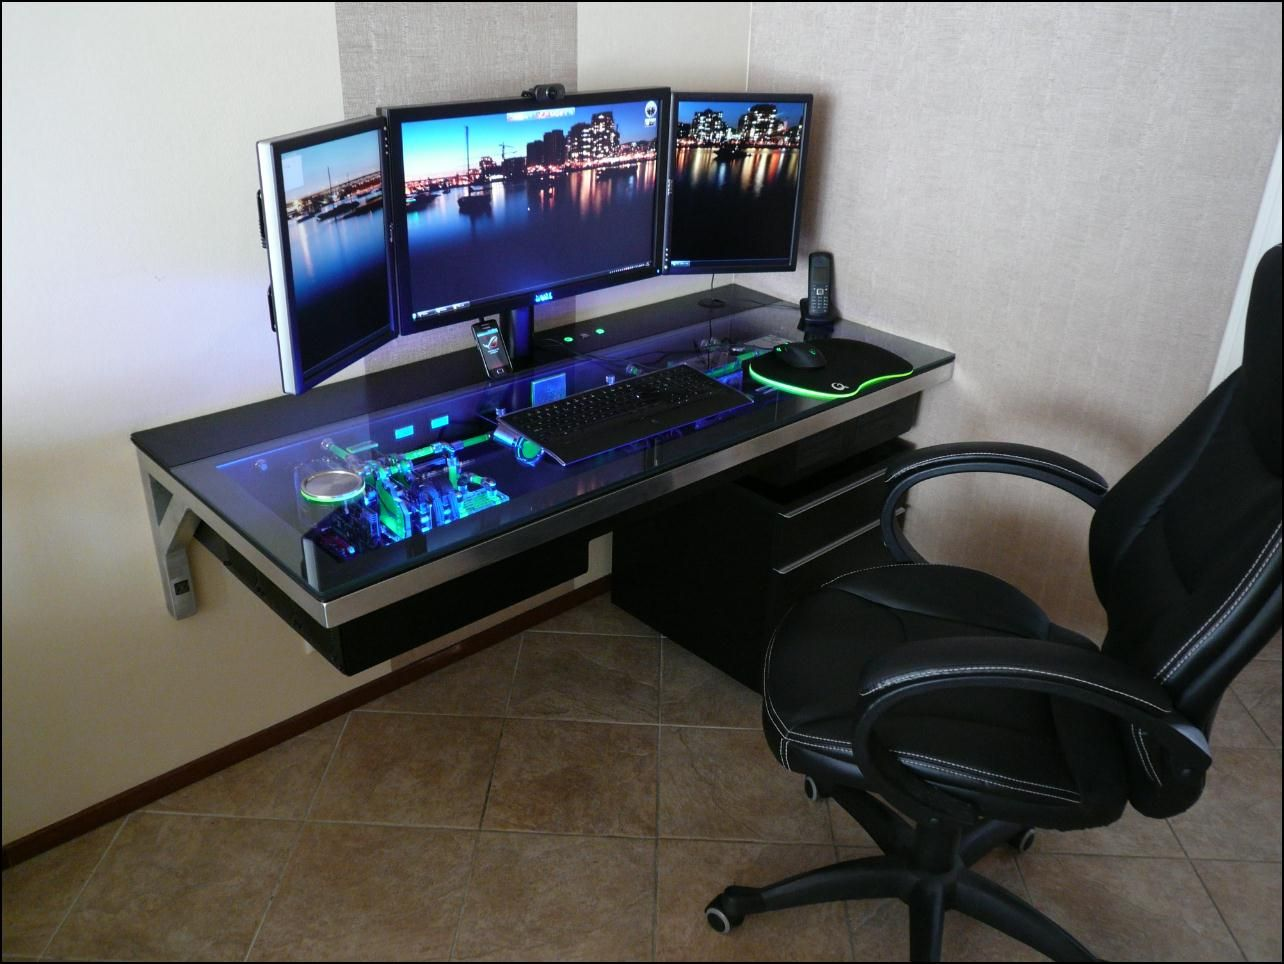 Best Computer Workstation Images On Pinterest Computer - Desks incorporate recessed computer technology